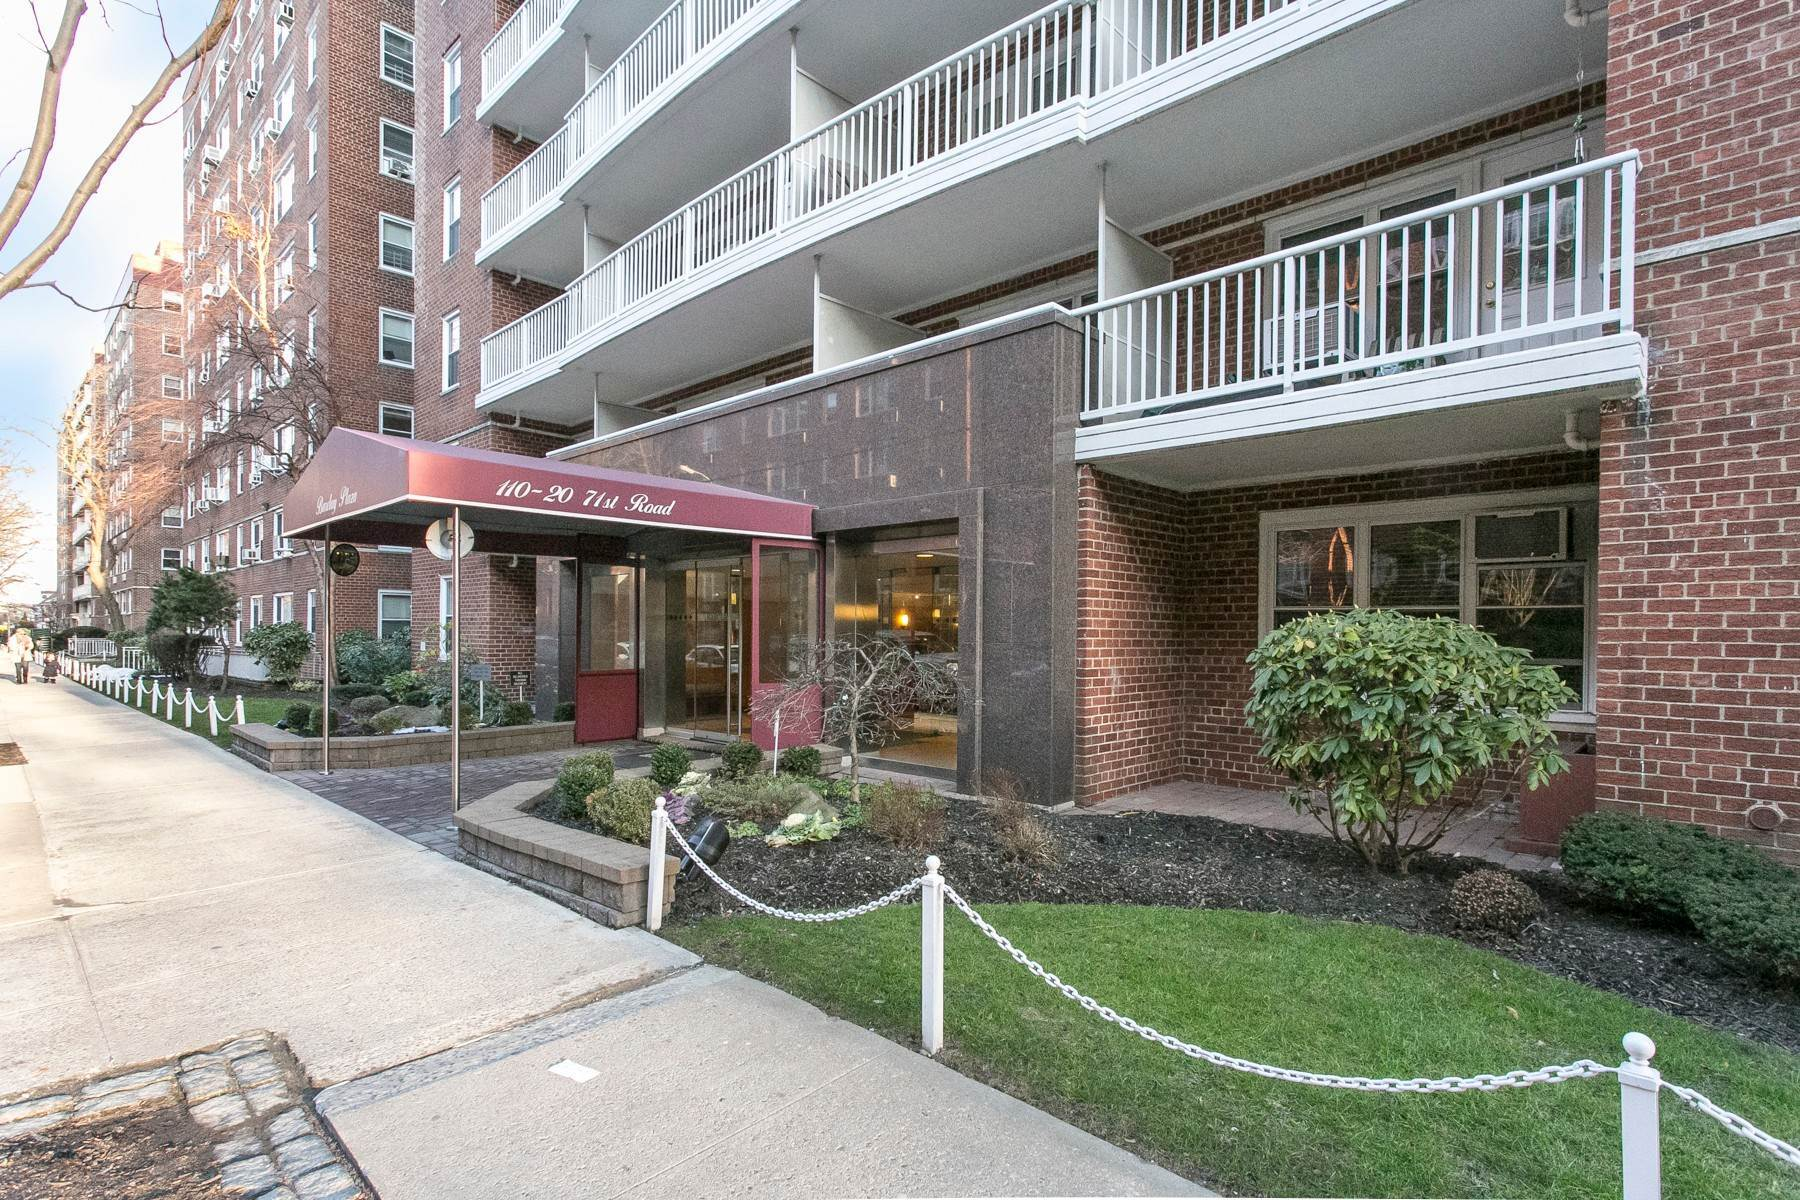 Co-op Properties por un Venta en ''BARCLAY PLAZA PREMIER 2 BEDROOM 1 BATH CO-OP WITH TERRACE' 110-20 71st Road, #319 Forest Hills, Nueva York 11375 Estados Unidos